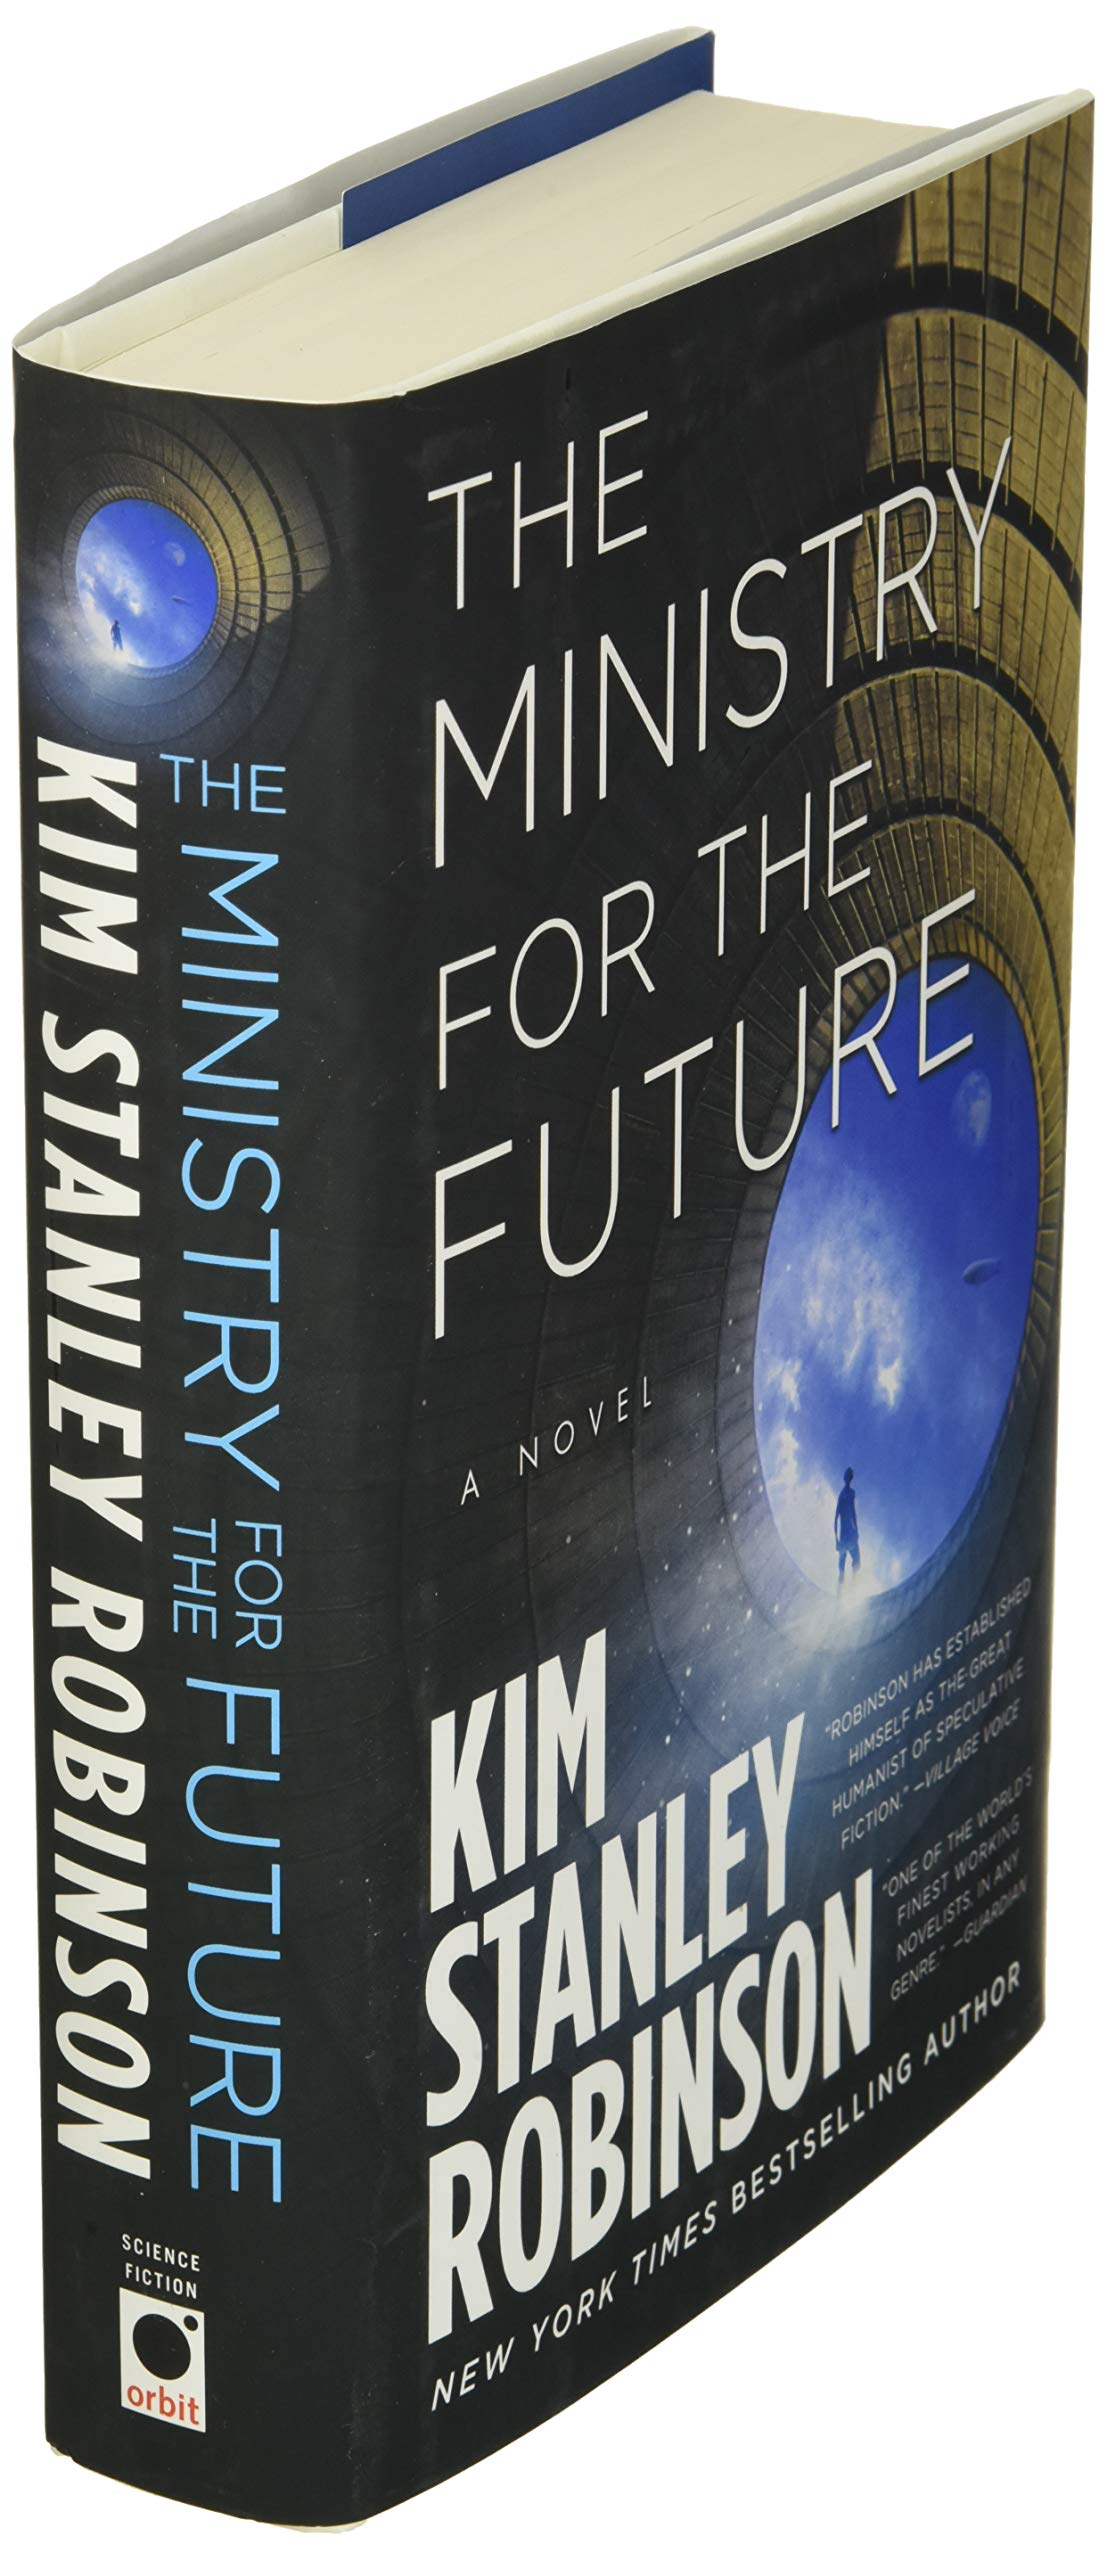 The Ministry for the Future: A Novel: Robinson, Kim Stanley: 9780316300131:  Books - Amazon.ca